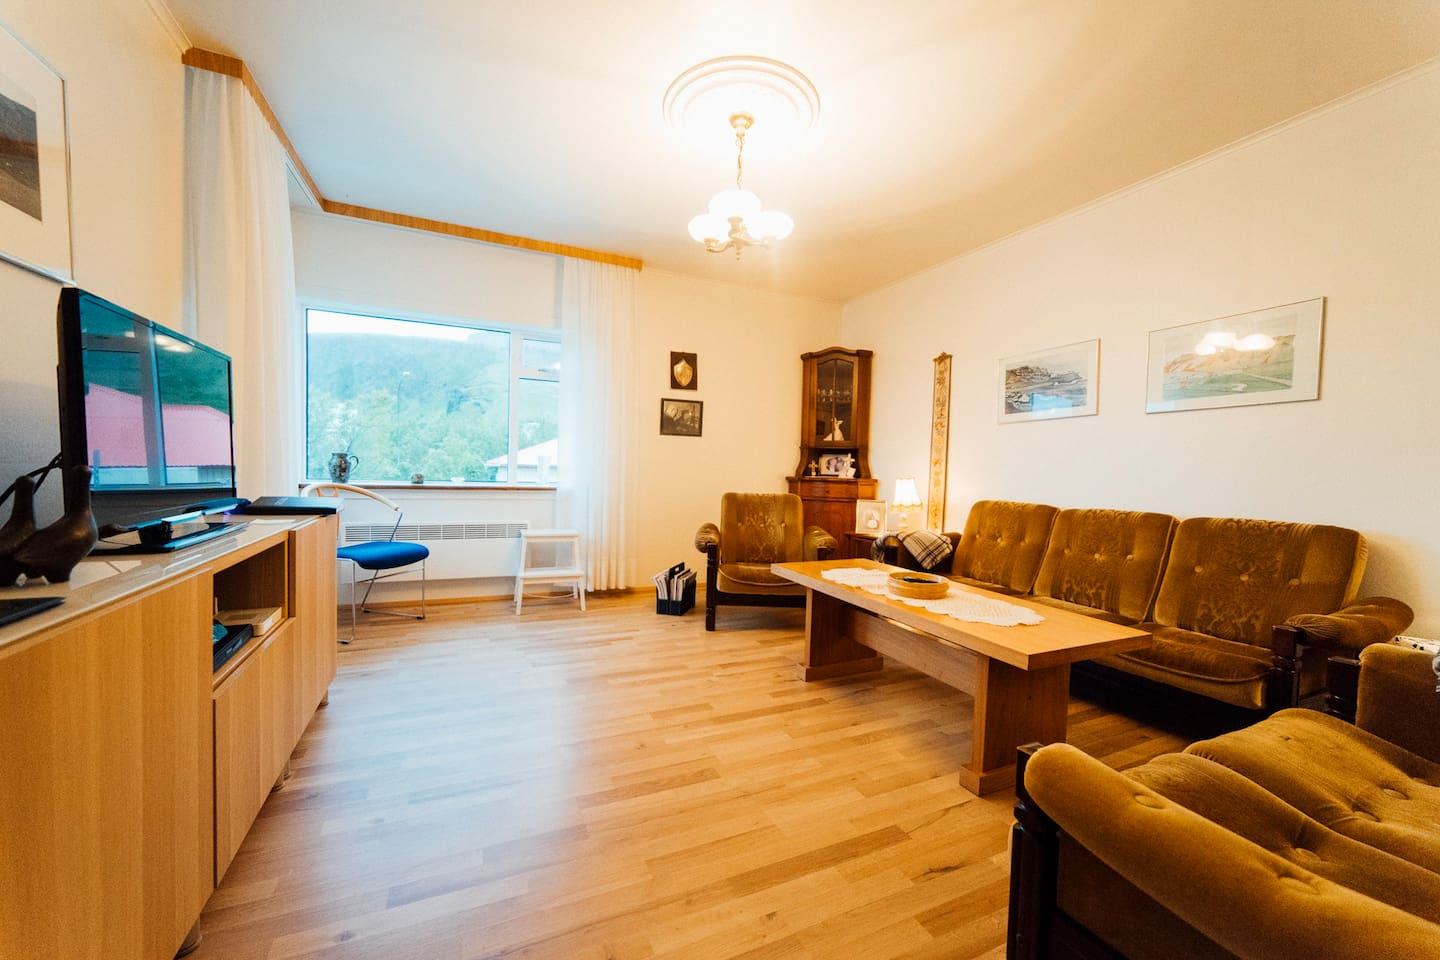 Cosy living room, the fish-eye lens increases the room size